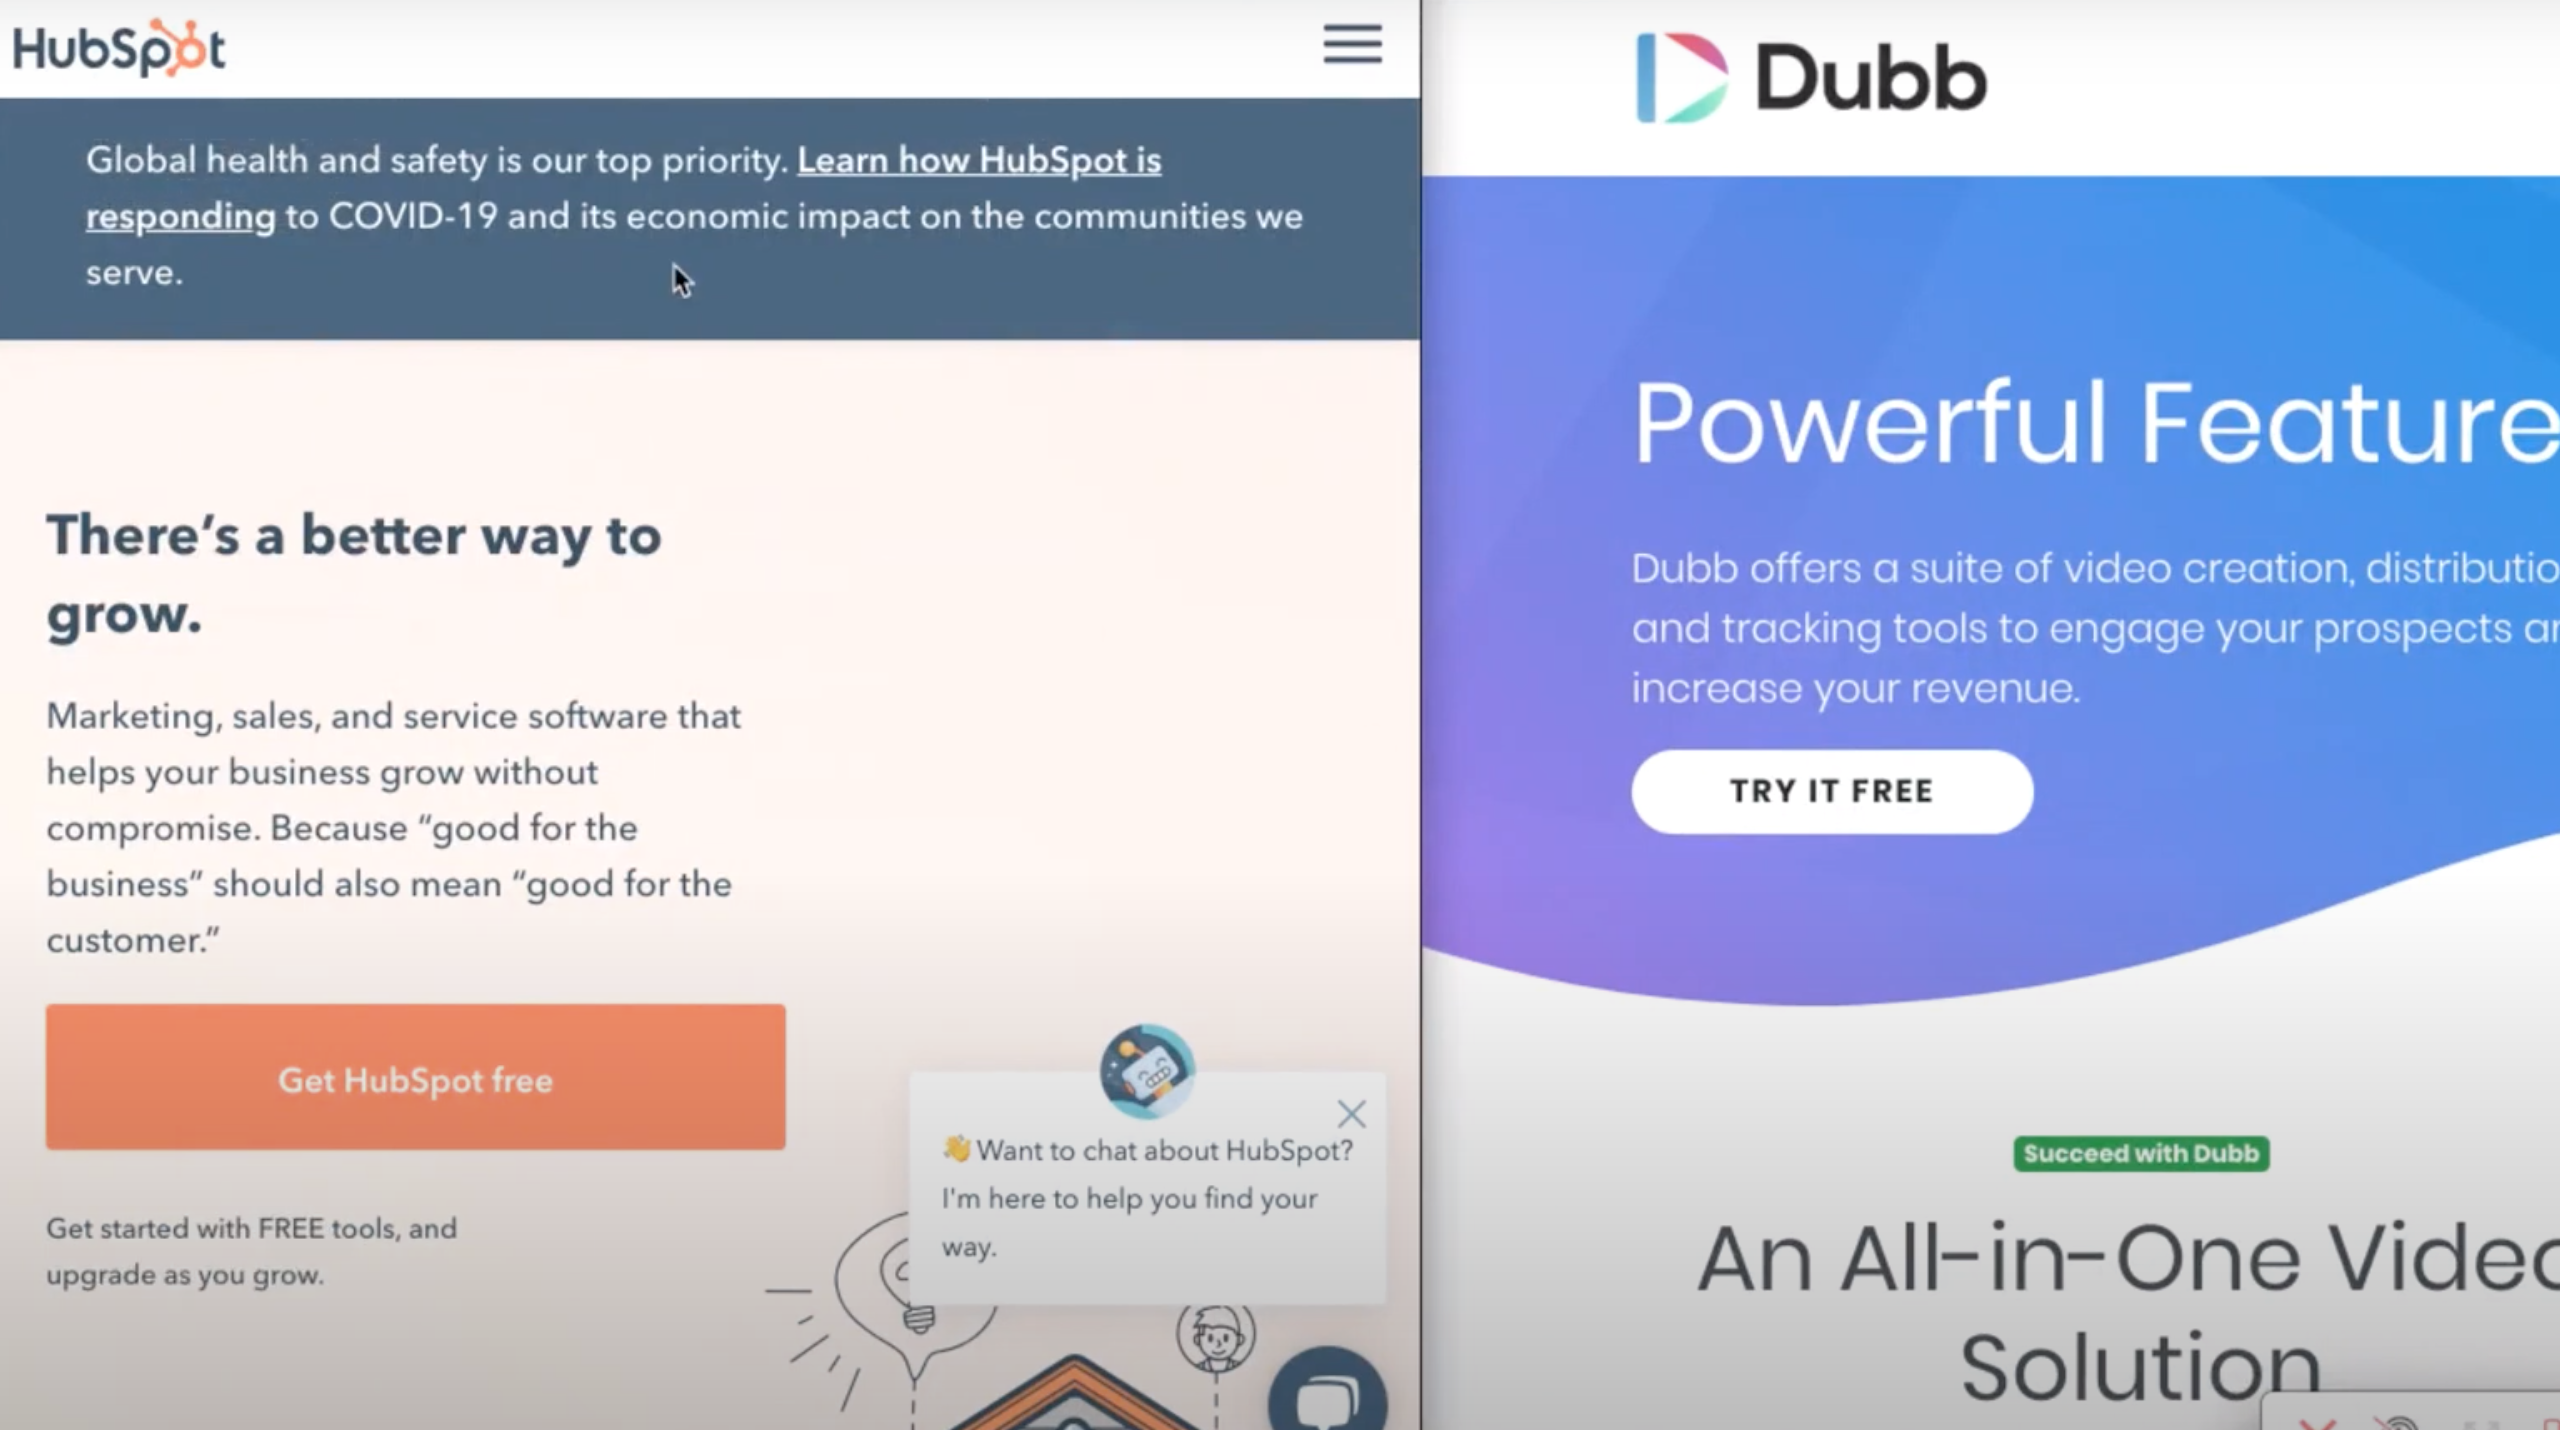 Hubspot website compared to Dubb